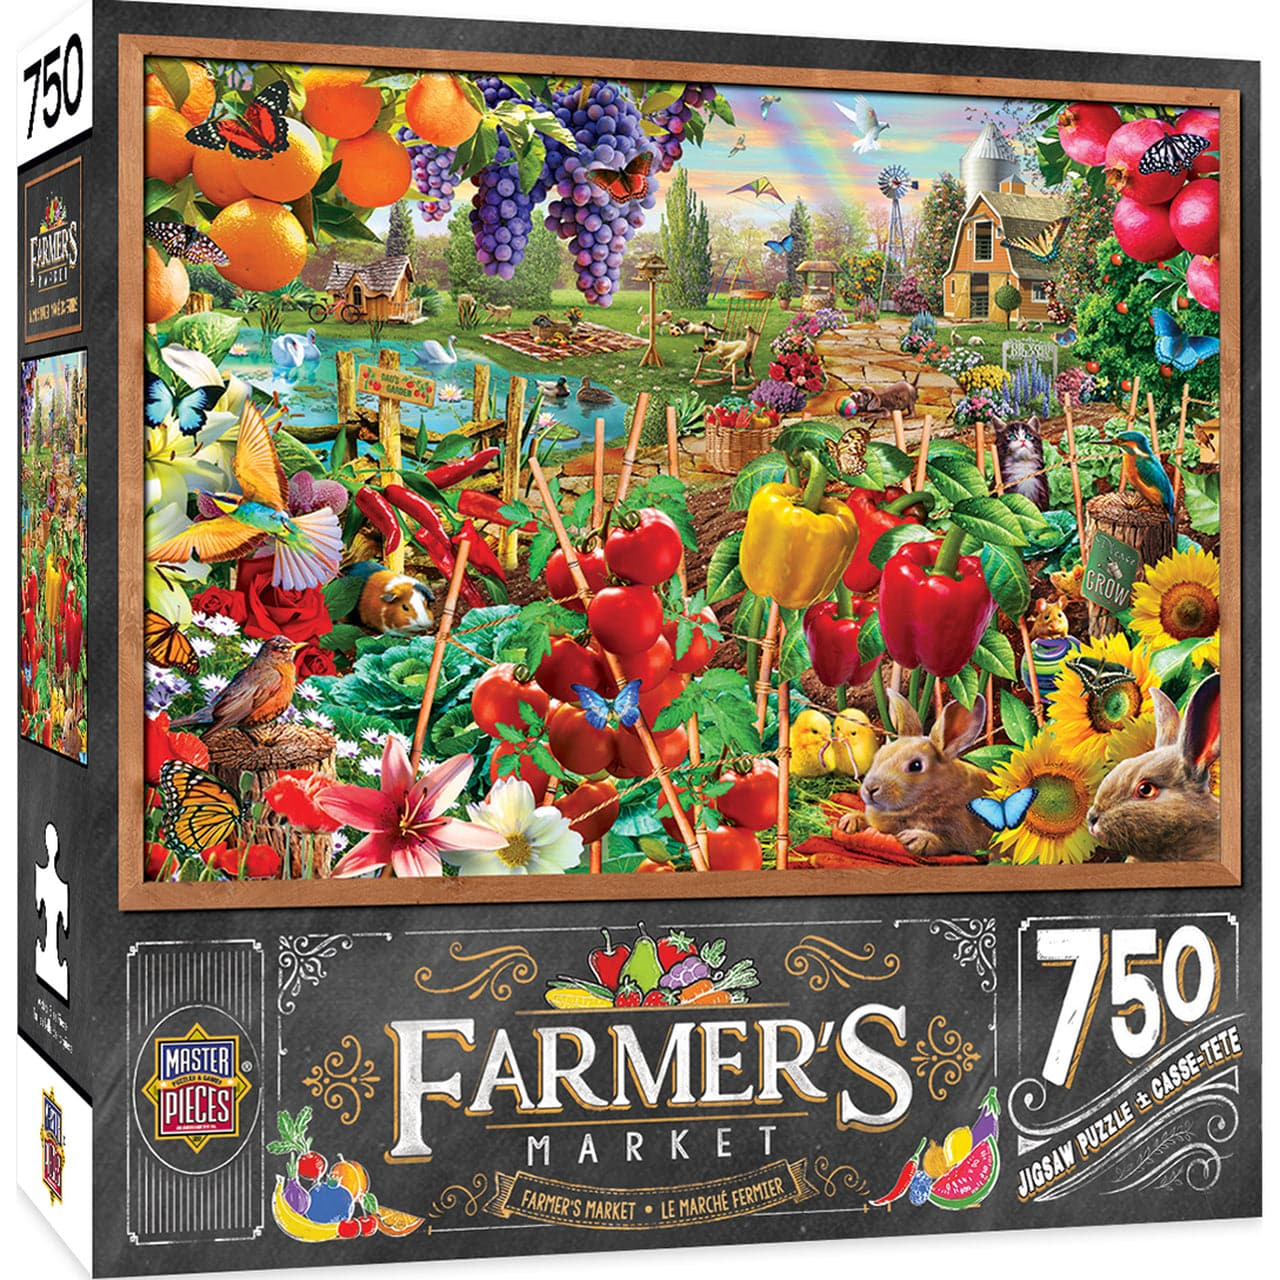 Farmer's Market - A Plentiful Season - 750 Piece Puzzle